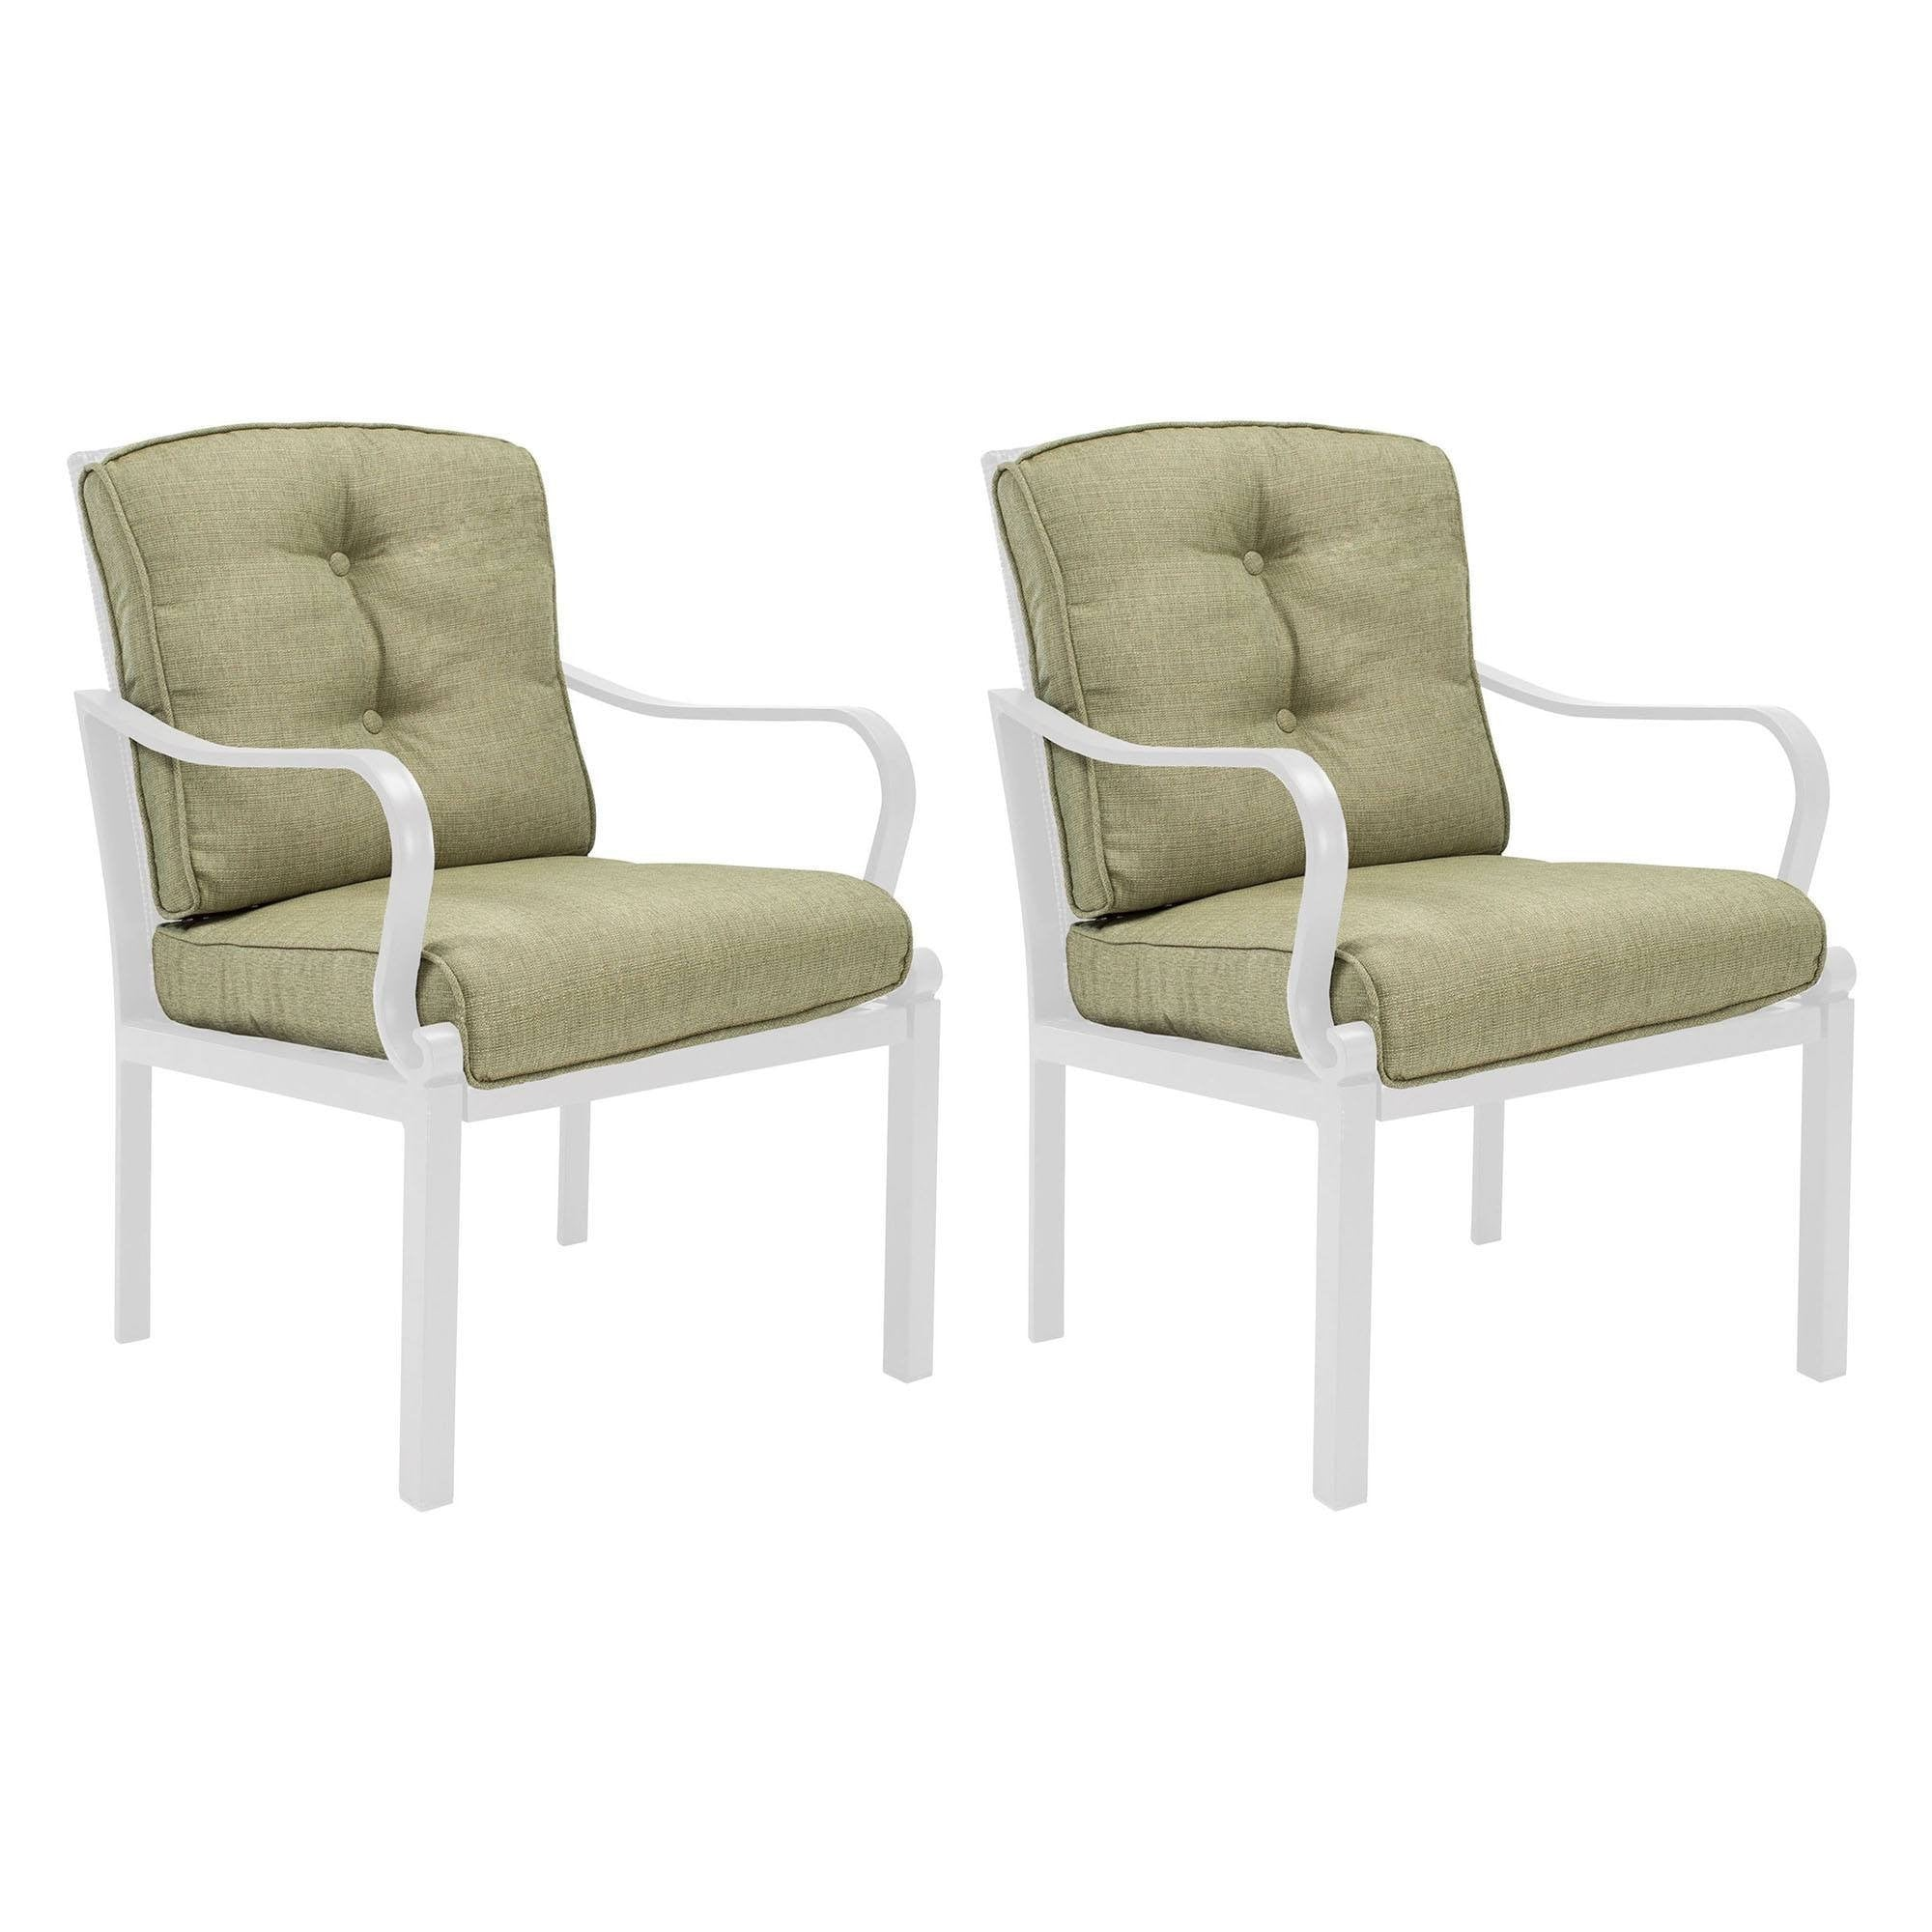 Peyton Dining Chair Replacement Cushions Set Of 2